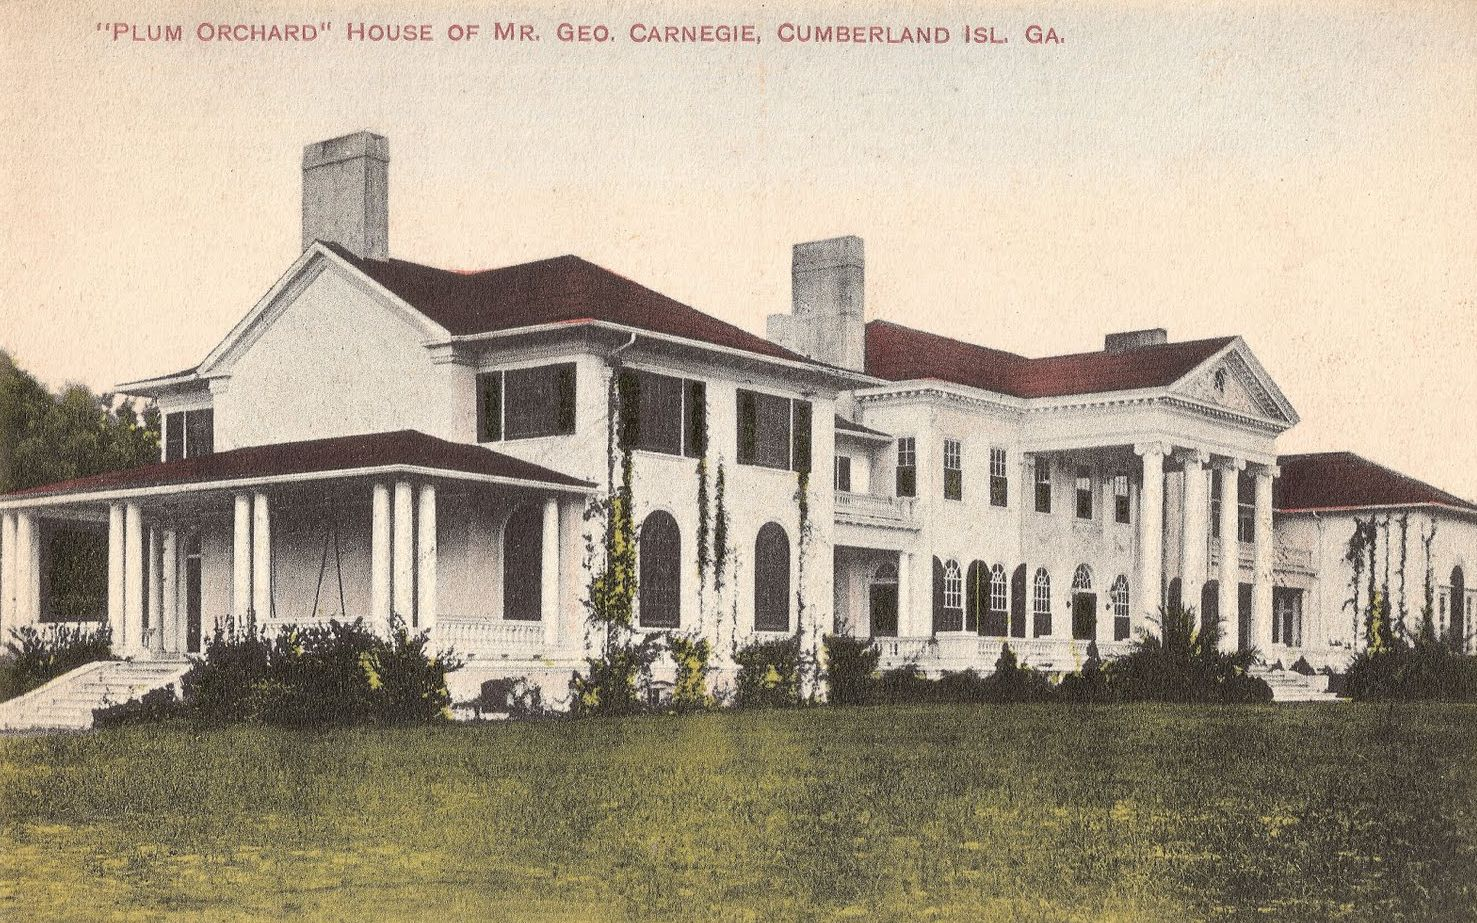 The Carnegie Mansions Of Cumberland Island Georgia Living In The Blue Ridge Mountains Of North Carolina A Blog